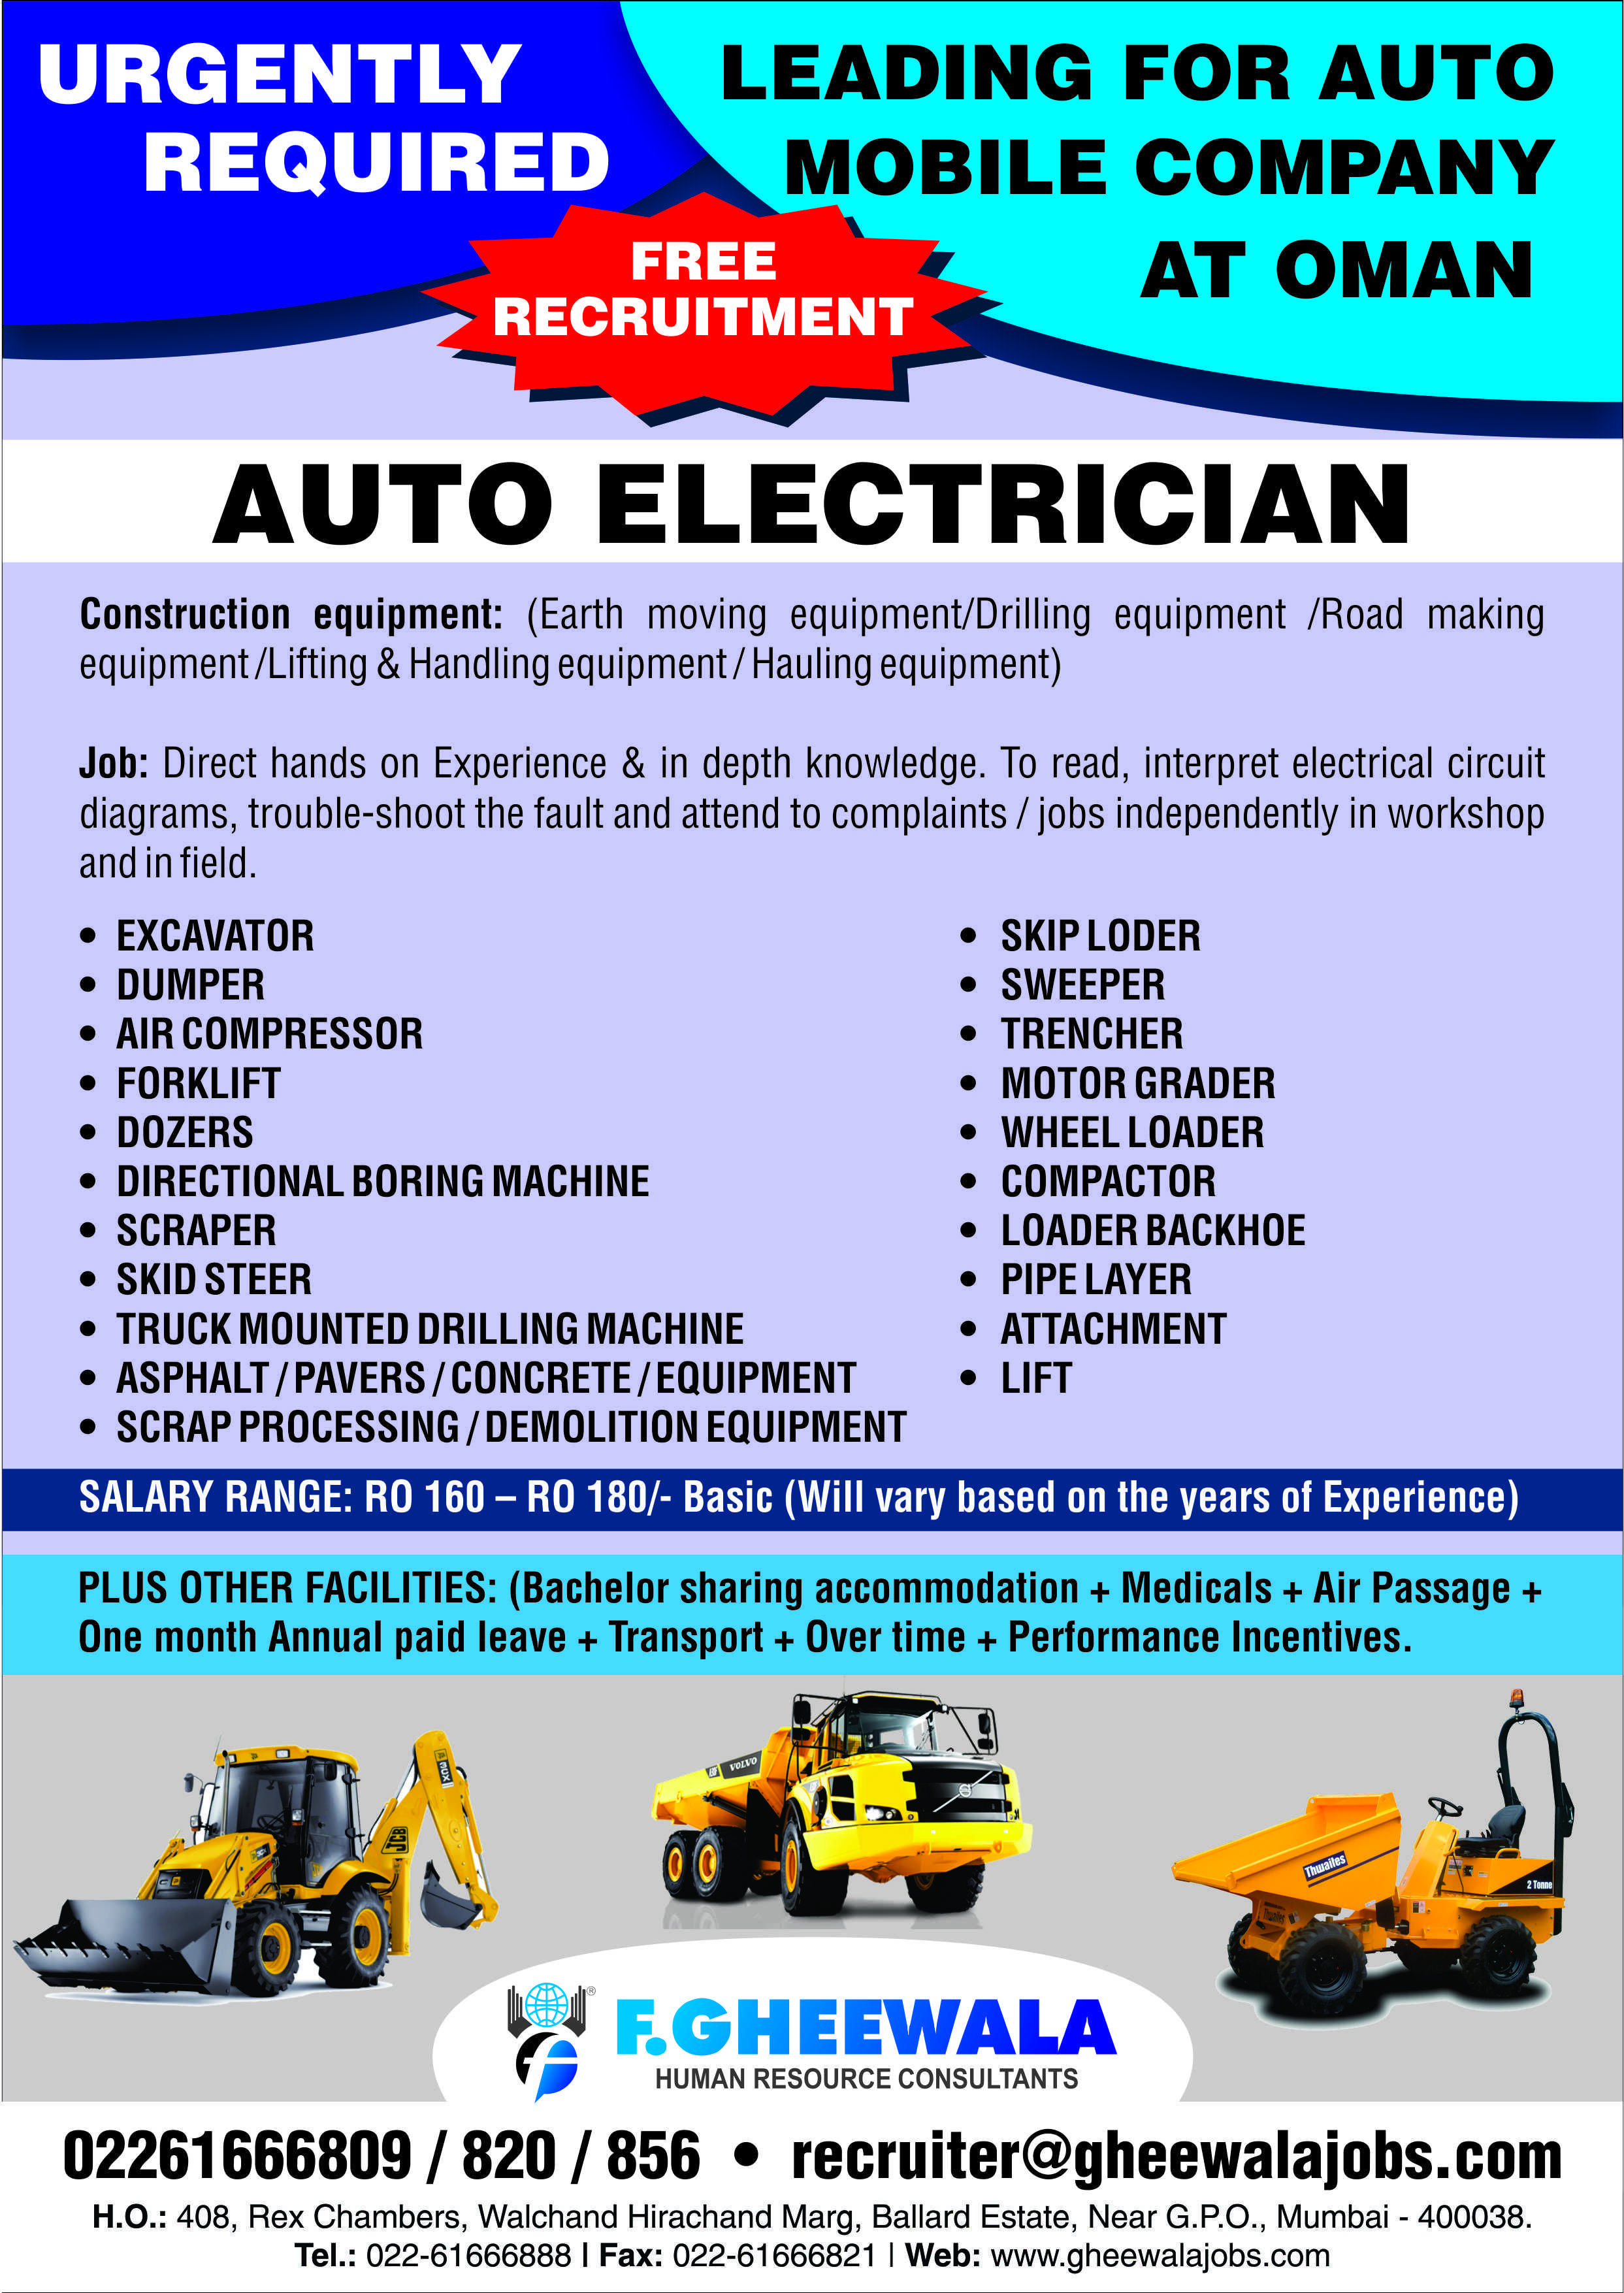 Urgent required AUTO ELECTRICIAN for Leading Auto Mobile